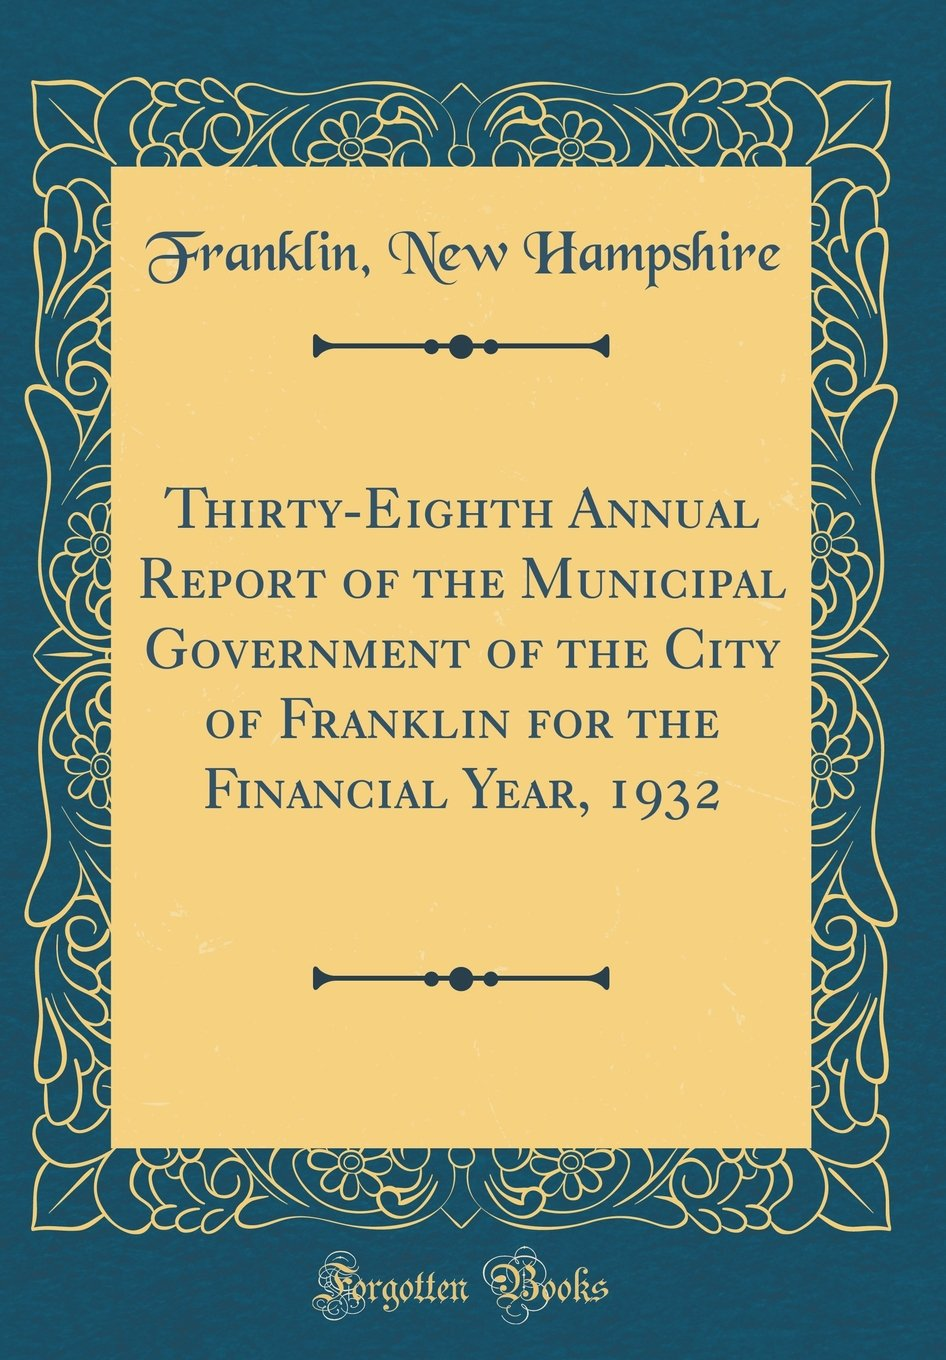 Download Thirty-Eighth Annual Report of the Municipal Government of the City of Franklin for the Financial Year, 1932 (Classic Reprint) pdf